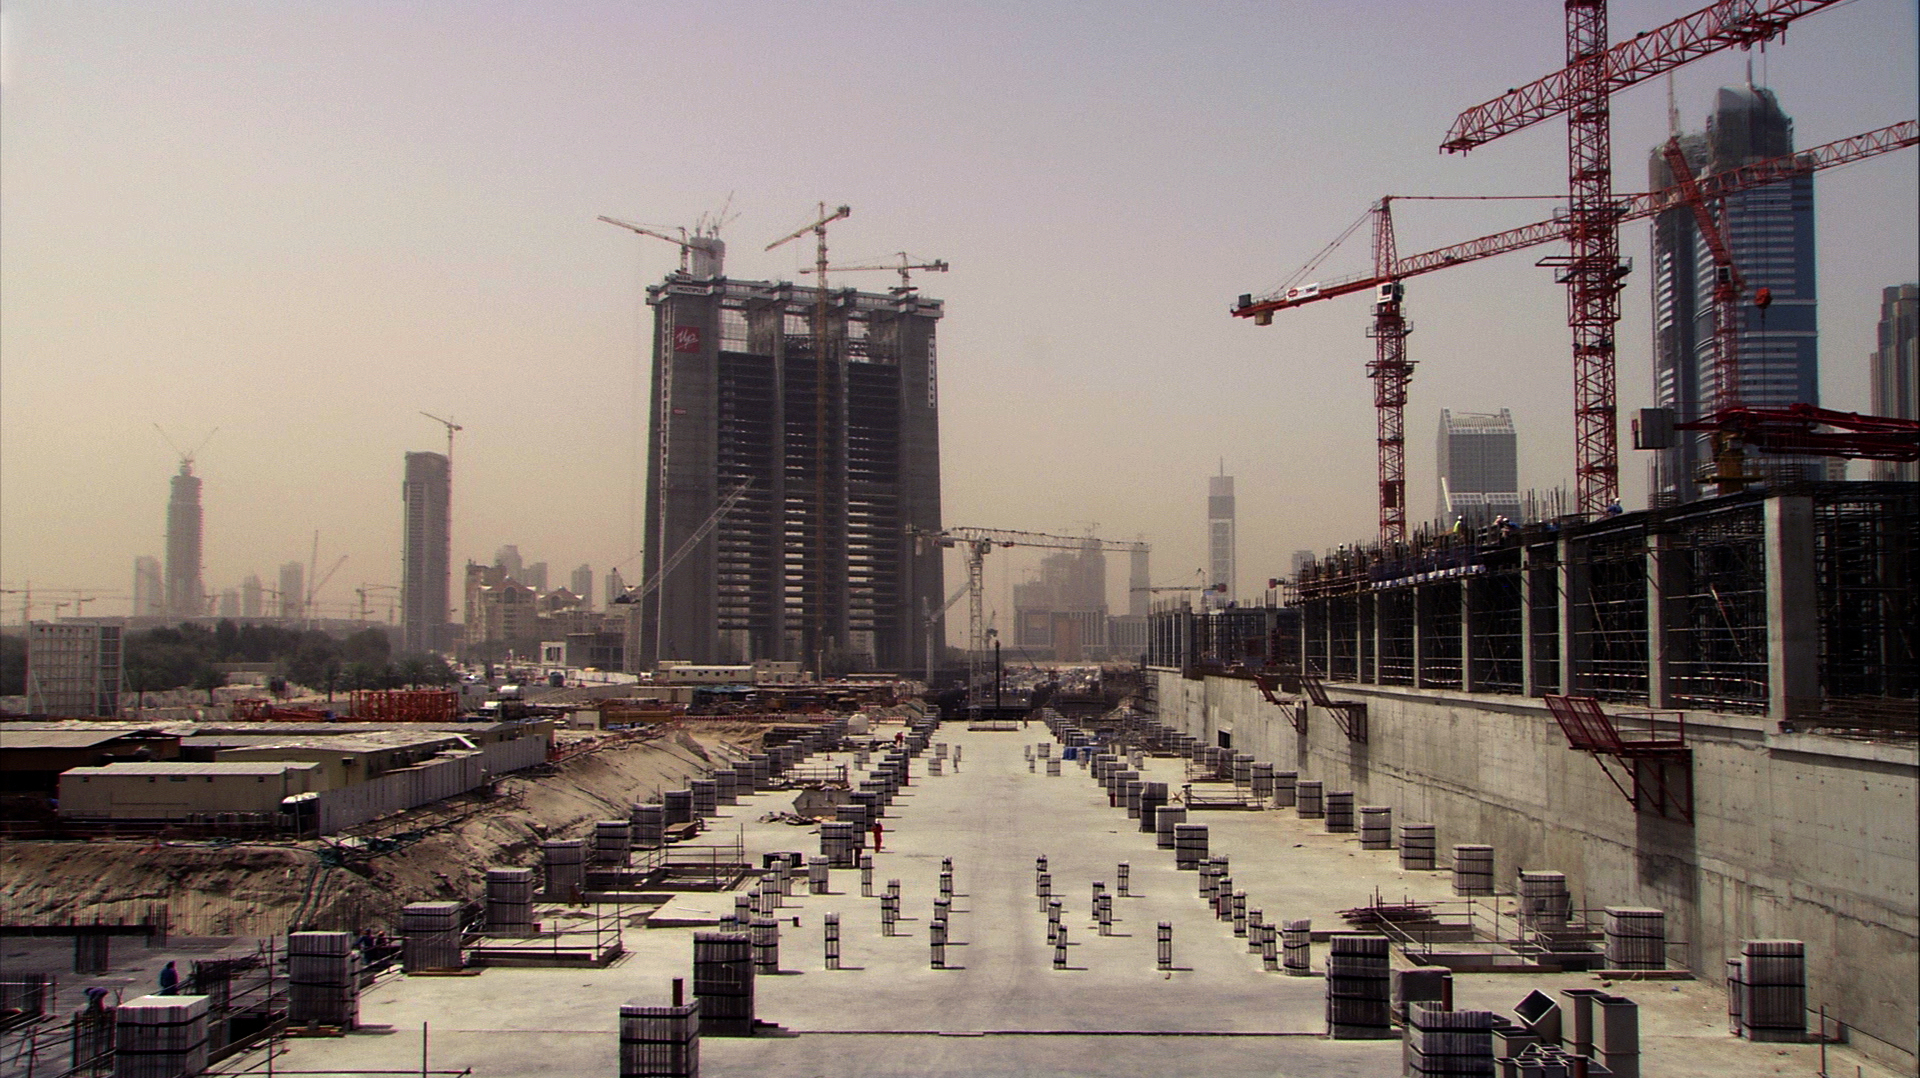 Dubai construction.jpg